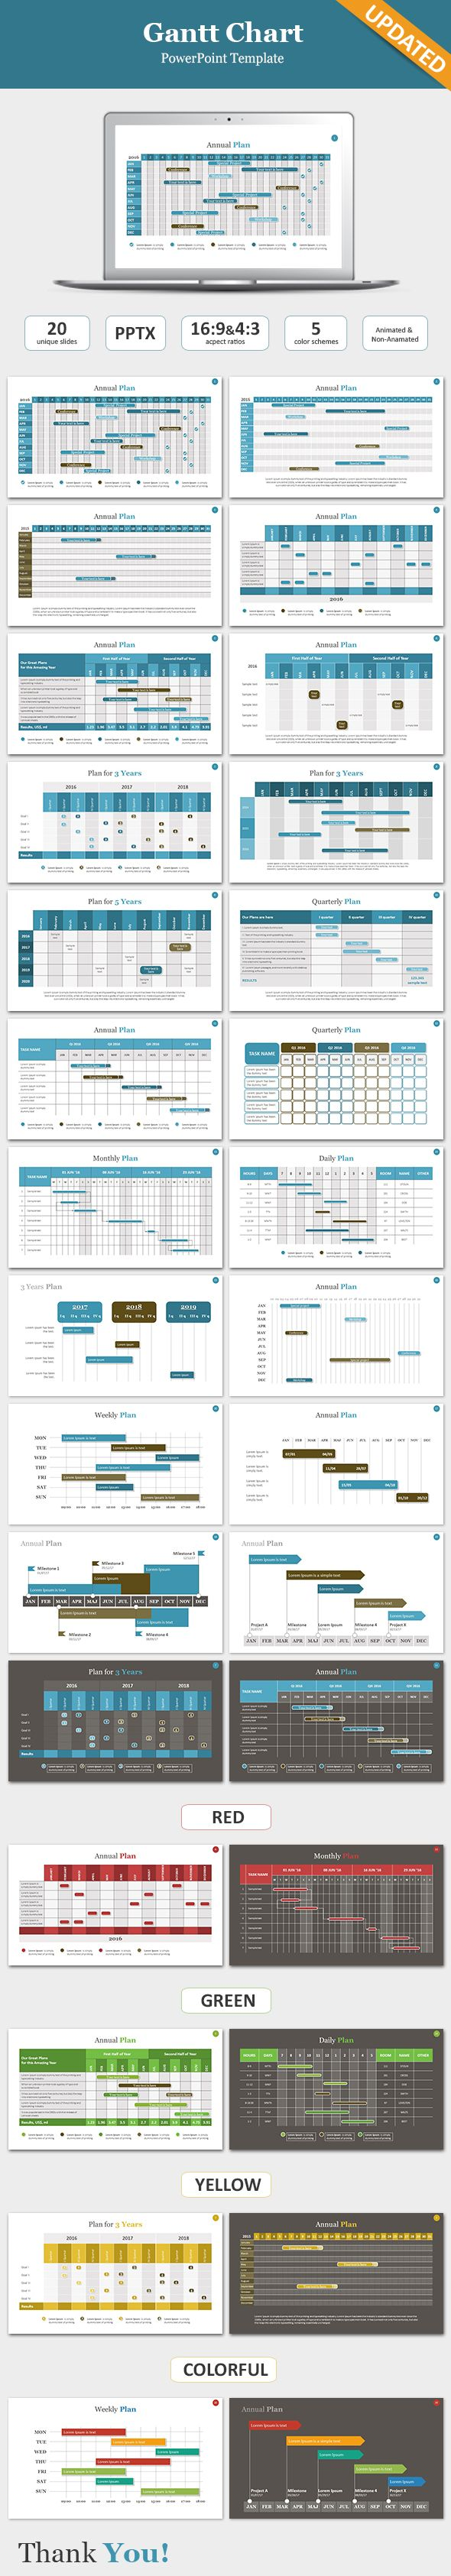 Gantt chart powerpoint template presentation templates template gantt chart powerpoint template presentation templates template and chart nvjuhfo Image collections